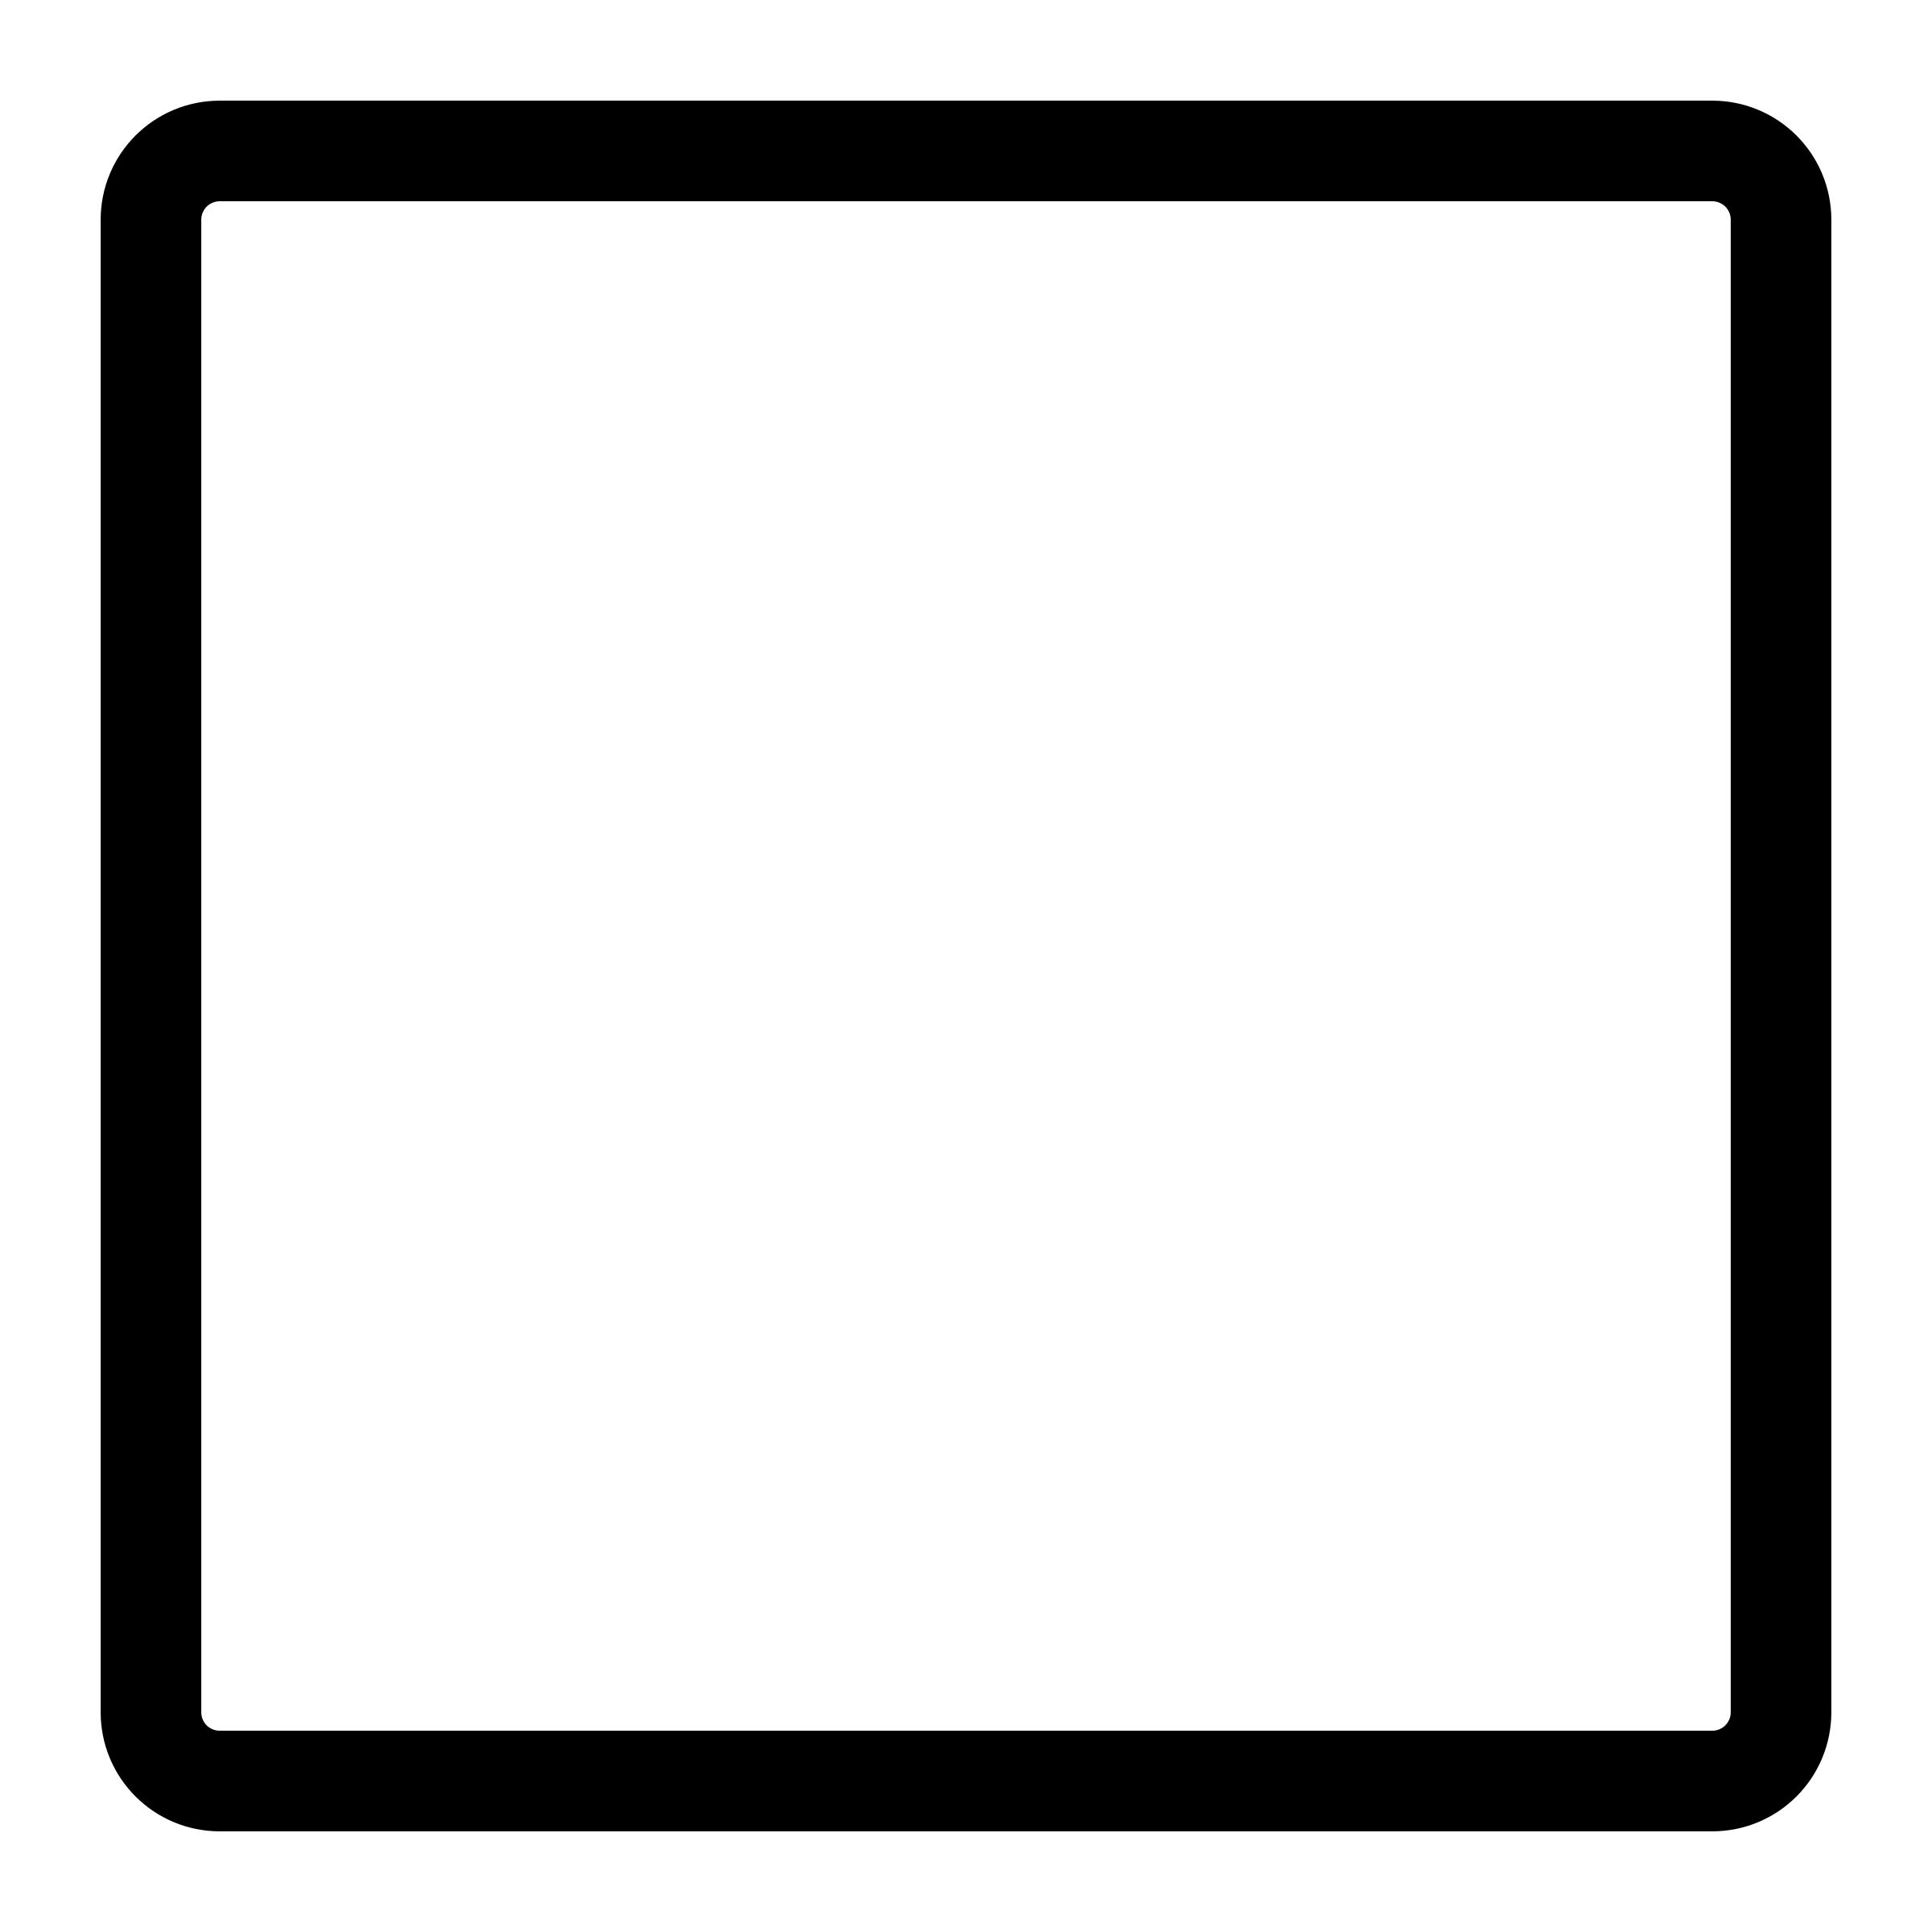 Box clipart empty box. Free icons png images